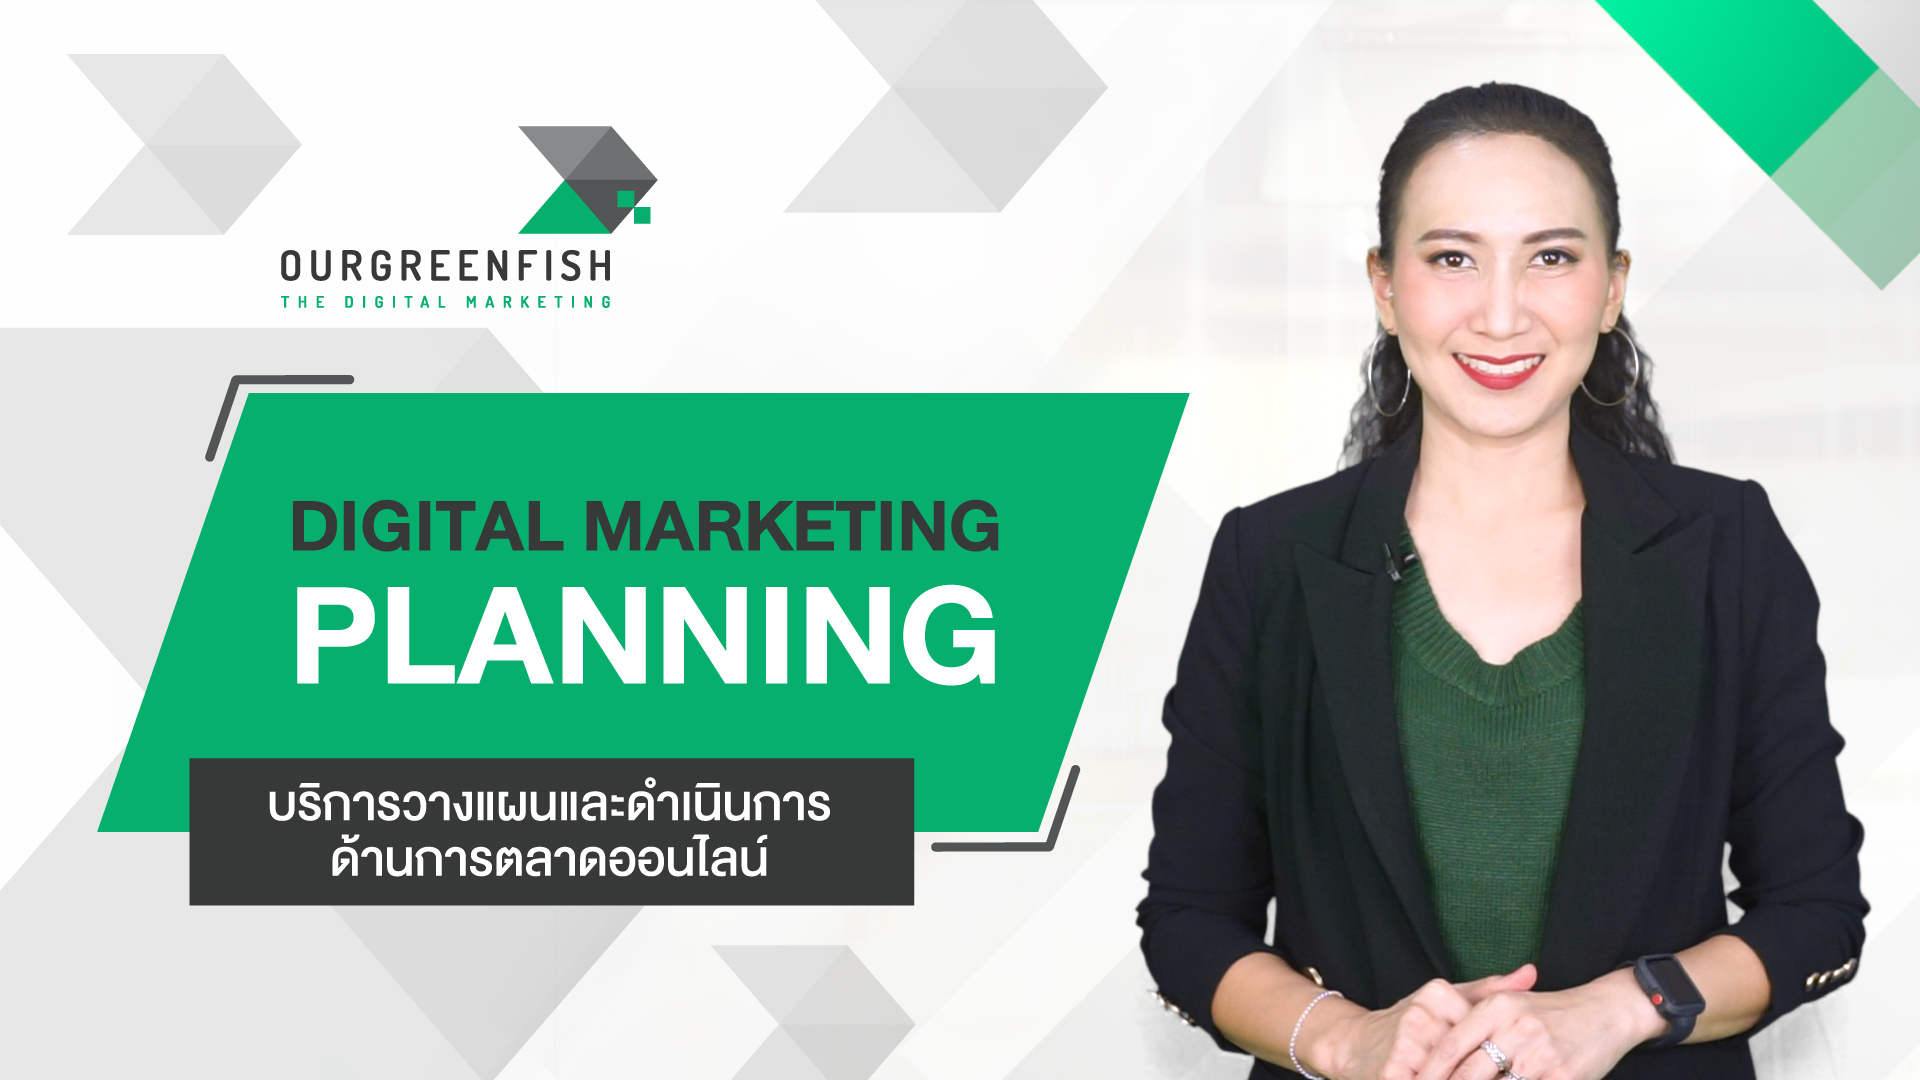 DIGITAL-MARKETING-PLANNING